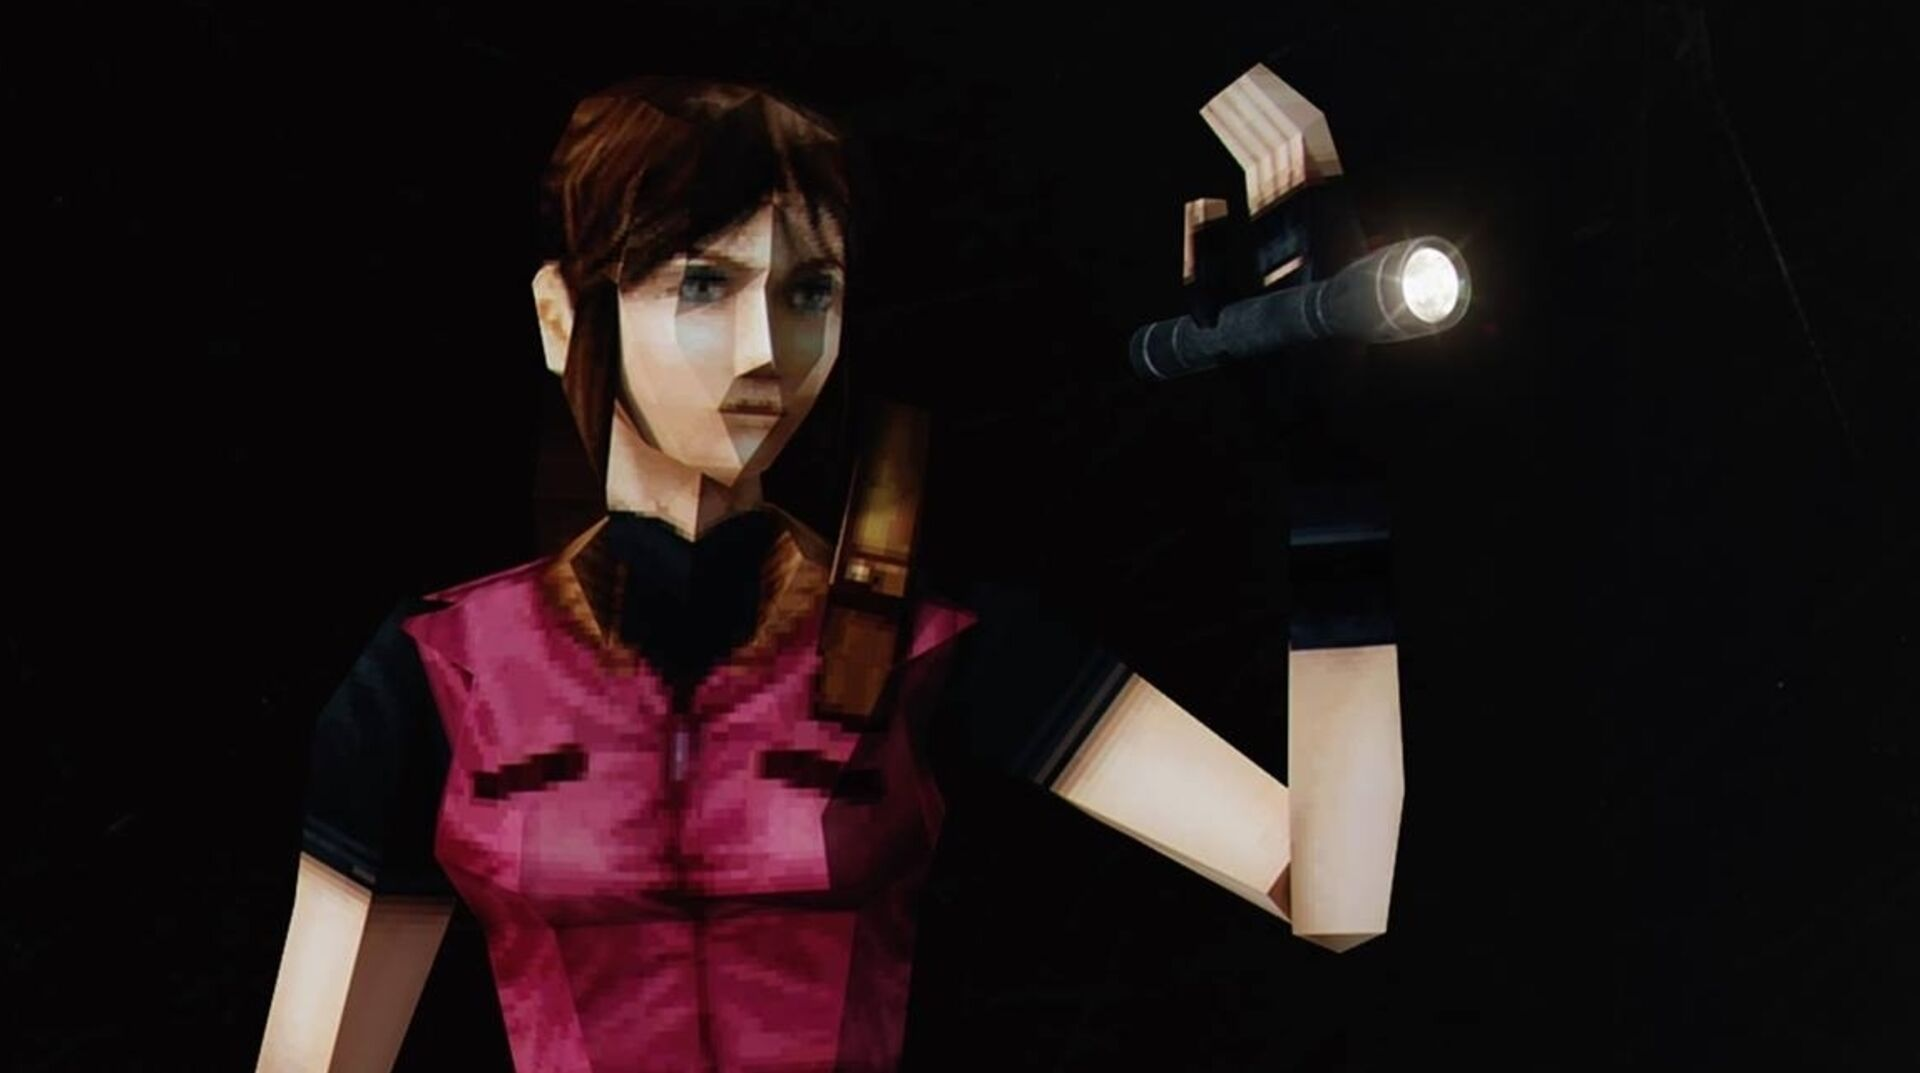 resident evil 2 leon and claire differences